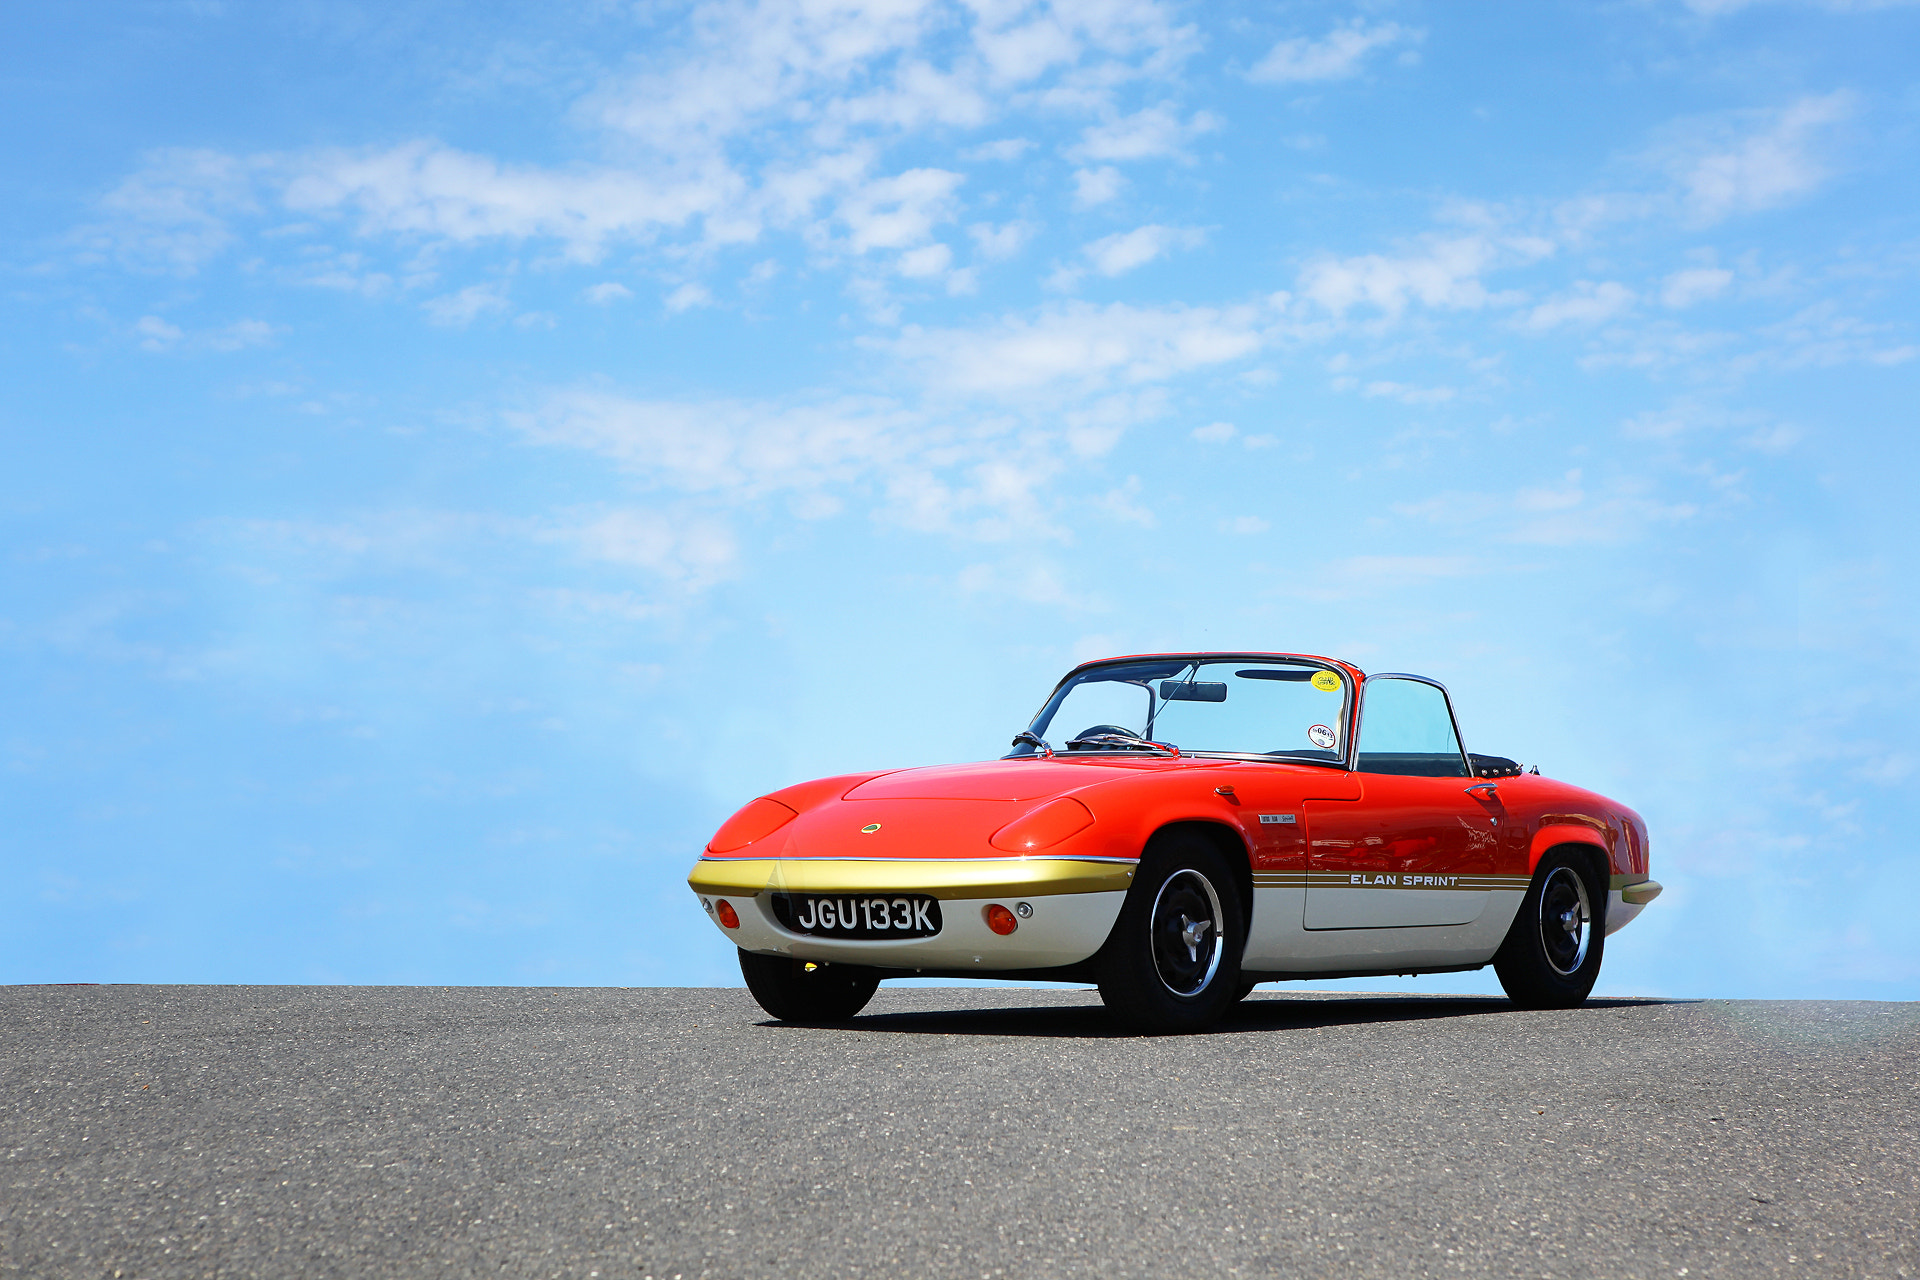 Photograph 50 years of he Lotus Elan by Martyn Lewis on 500px